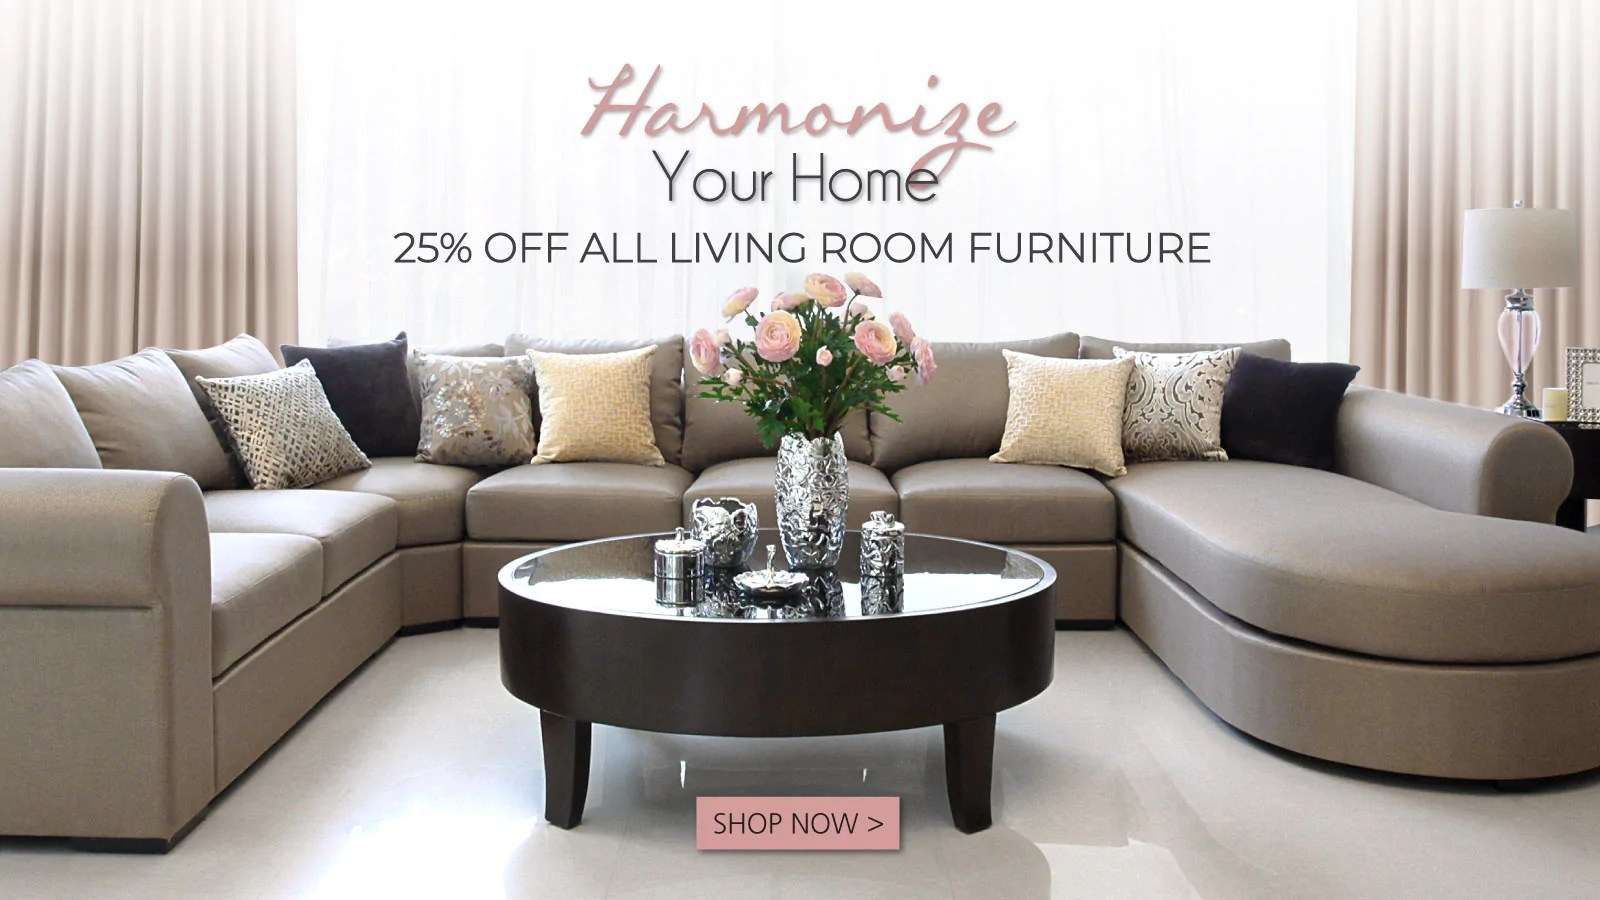 Sofa Scandinavian Jakarta Vinoti Living Furniture Home Decor Gift Ideas In Indonesia